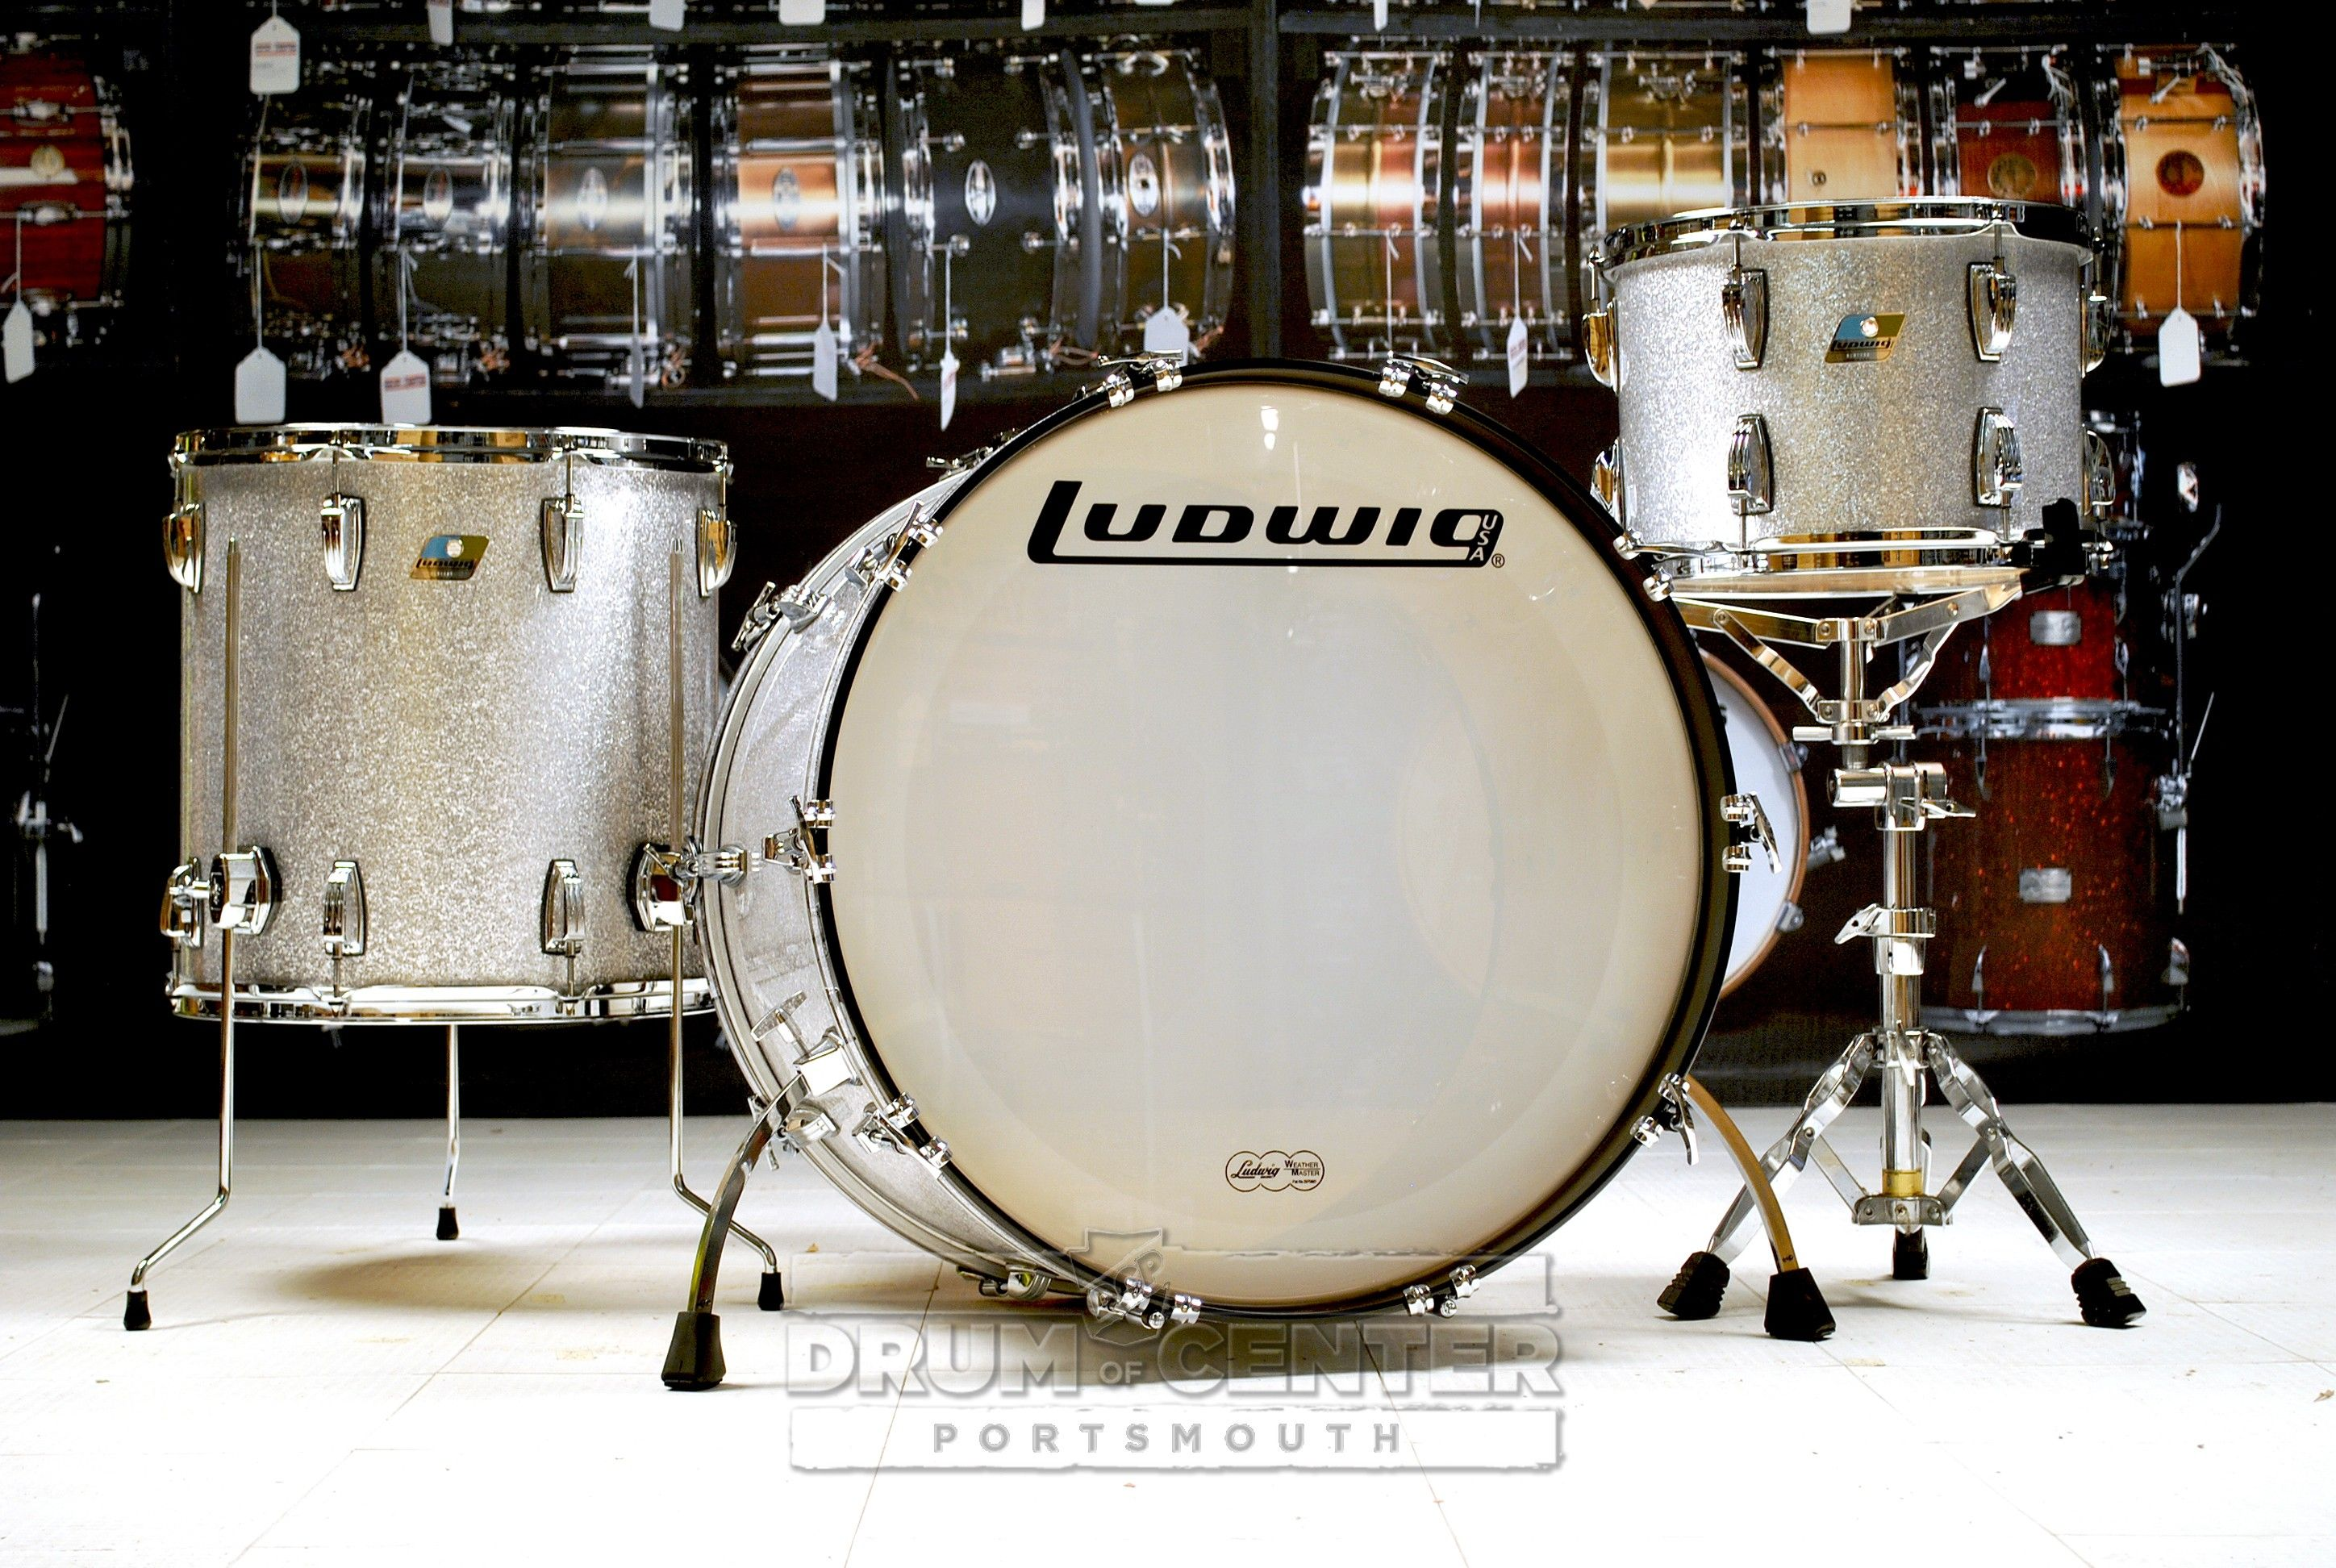 ludwig classic maple 3pc drum set silver sparkle custom made in the usa 24x14 kick with curved. Black Bedroom Furniture Sets. Home Design Ideas